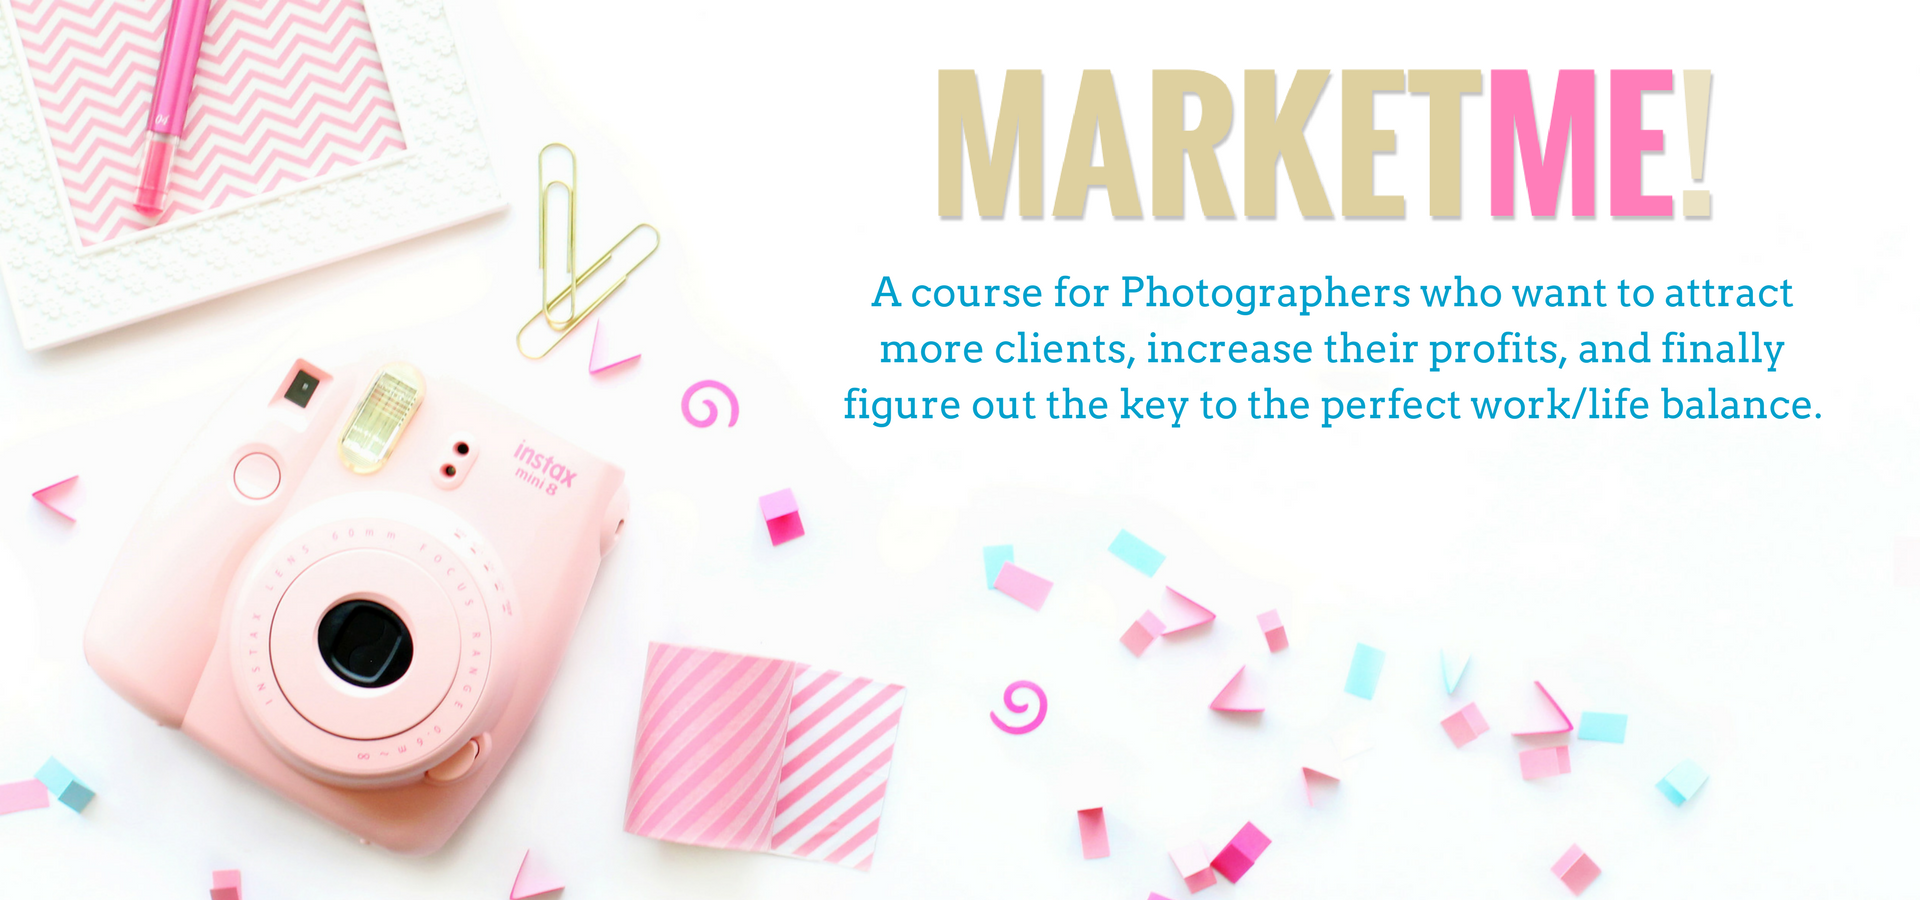 MarketME - An online course for photographers who want to attract more clients, increase their profits, and finally figure out the key to the perfect work/life balance.